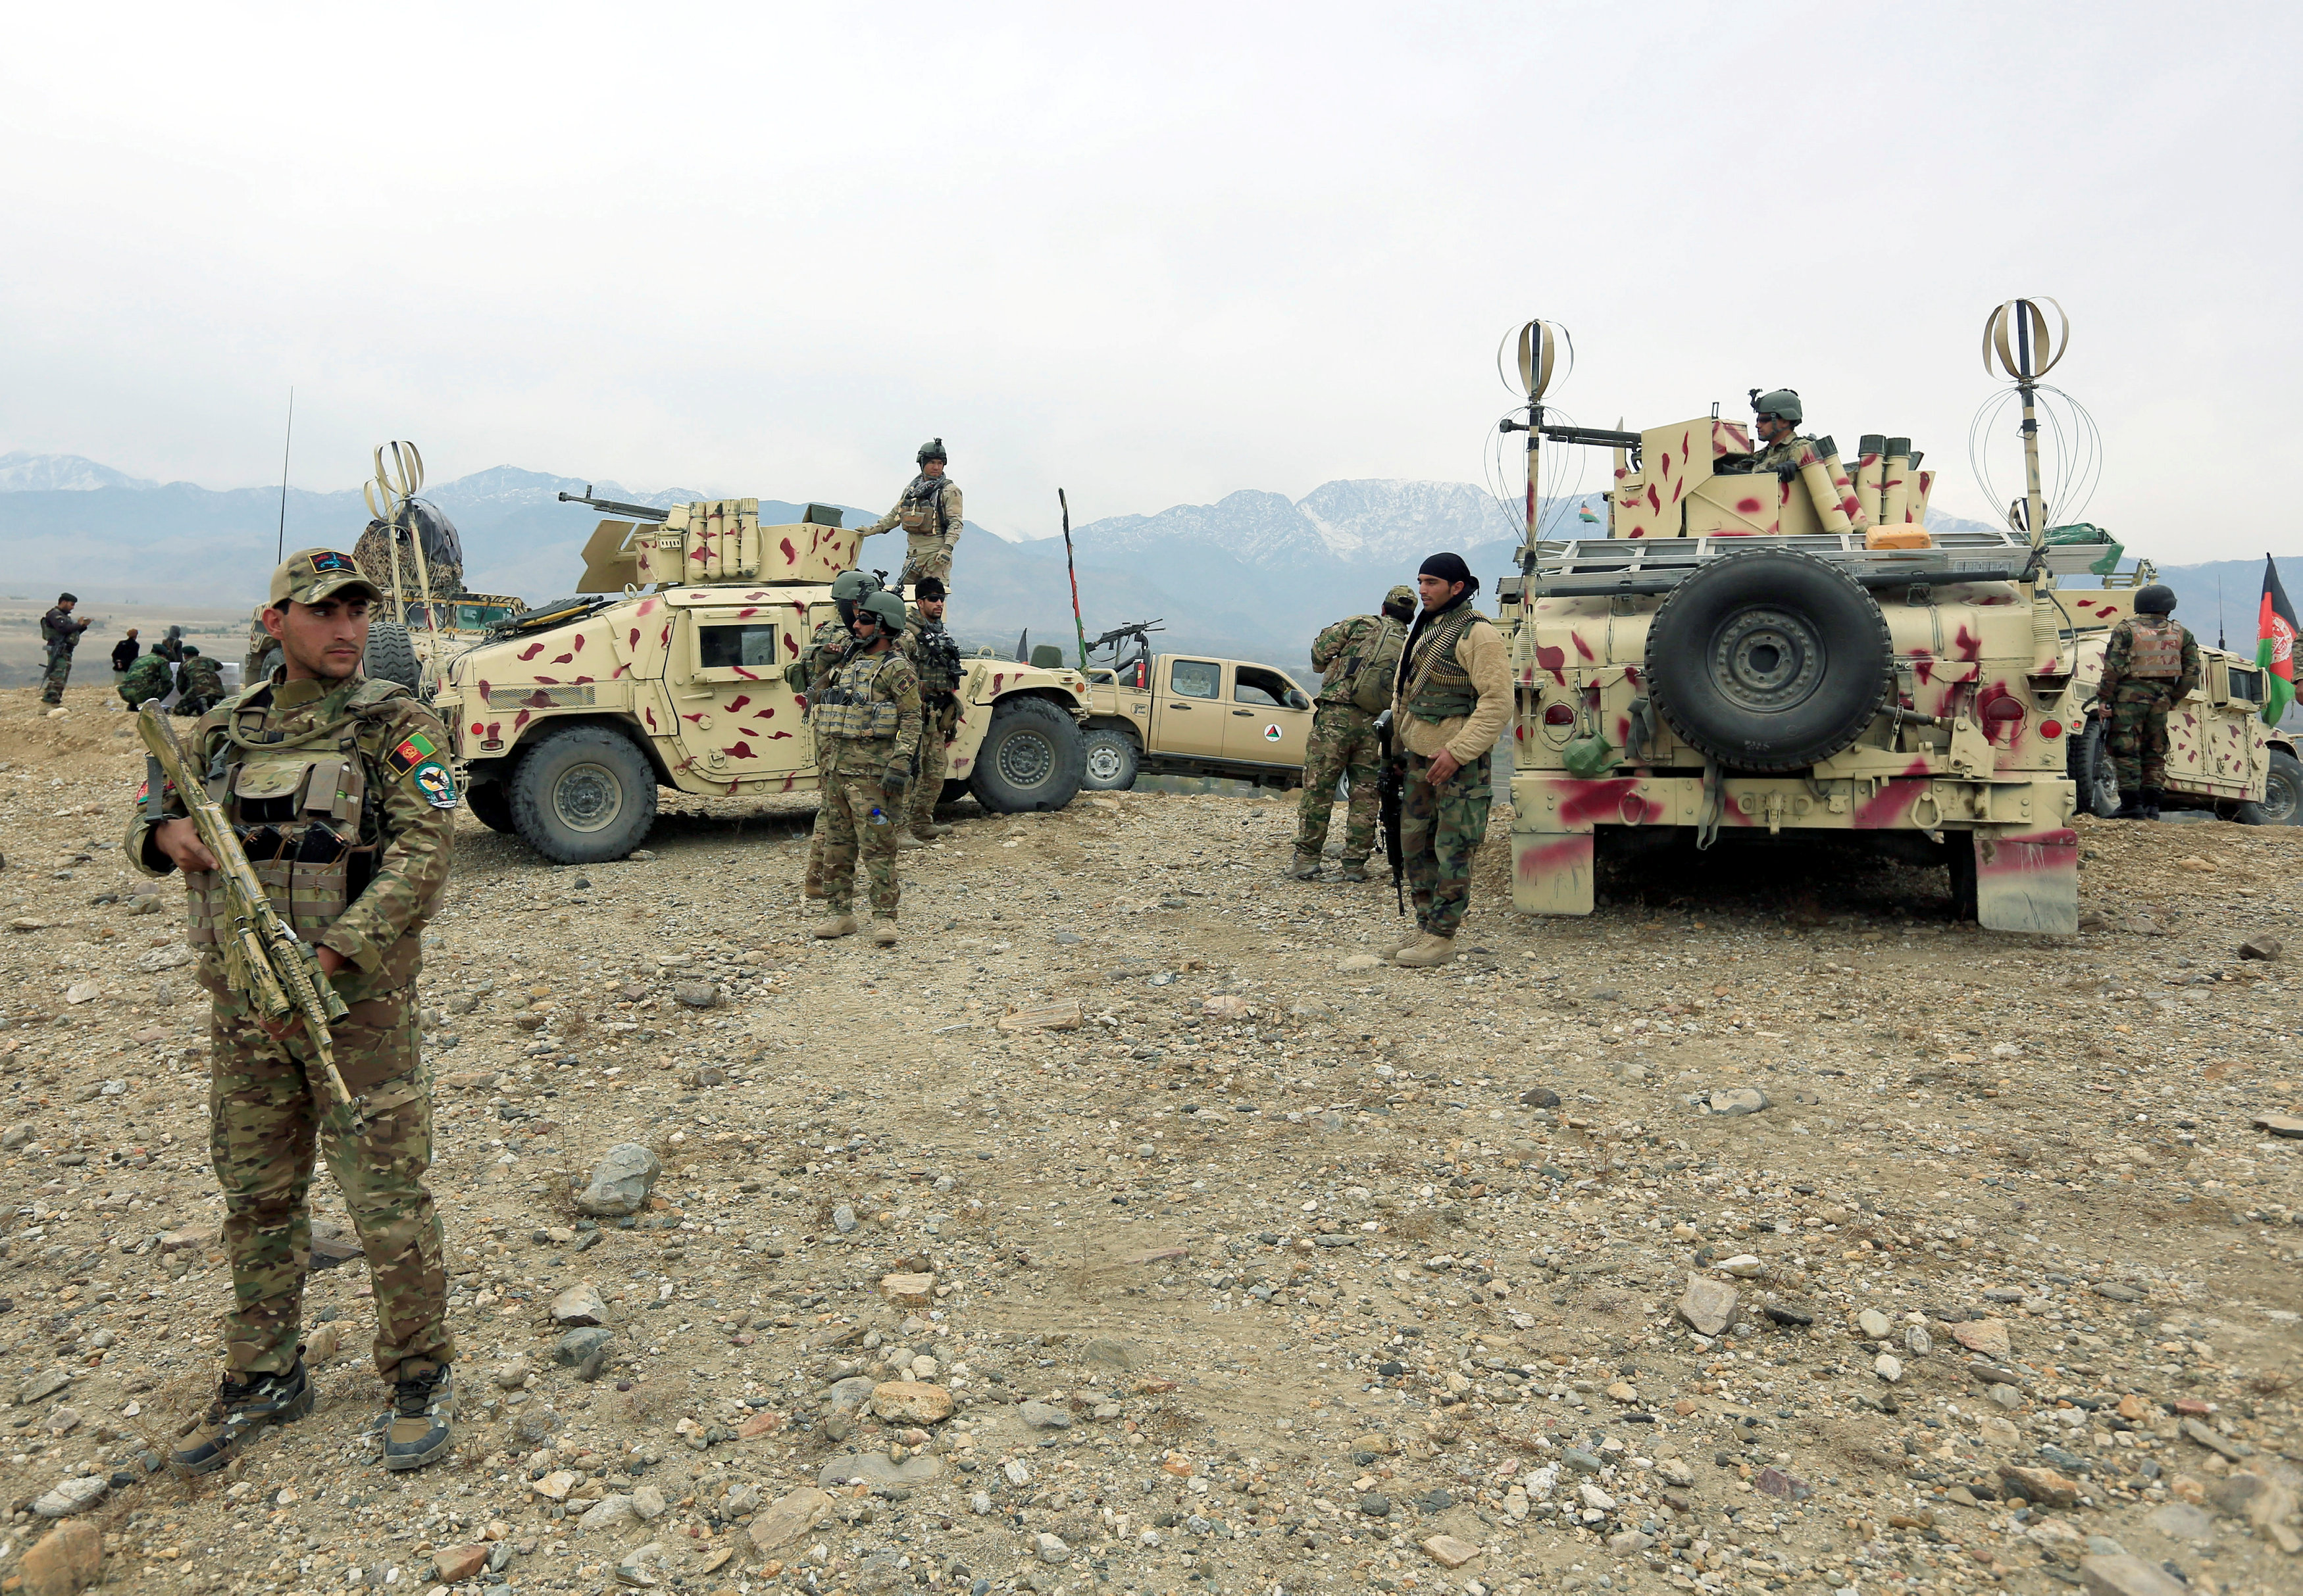 FILE PHOTO: Afghan National Army troops prepare for an operation against insurgents in Khogyani district of Nangarhar province, Afghanistan November 28, 2017. REUTERS/Parwiz/File Photo